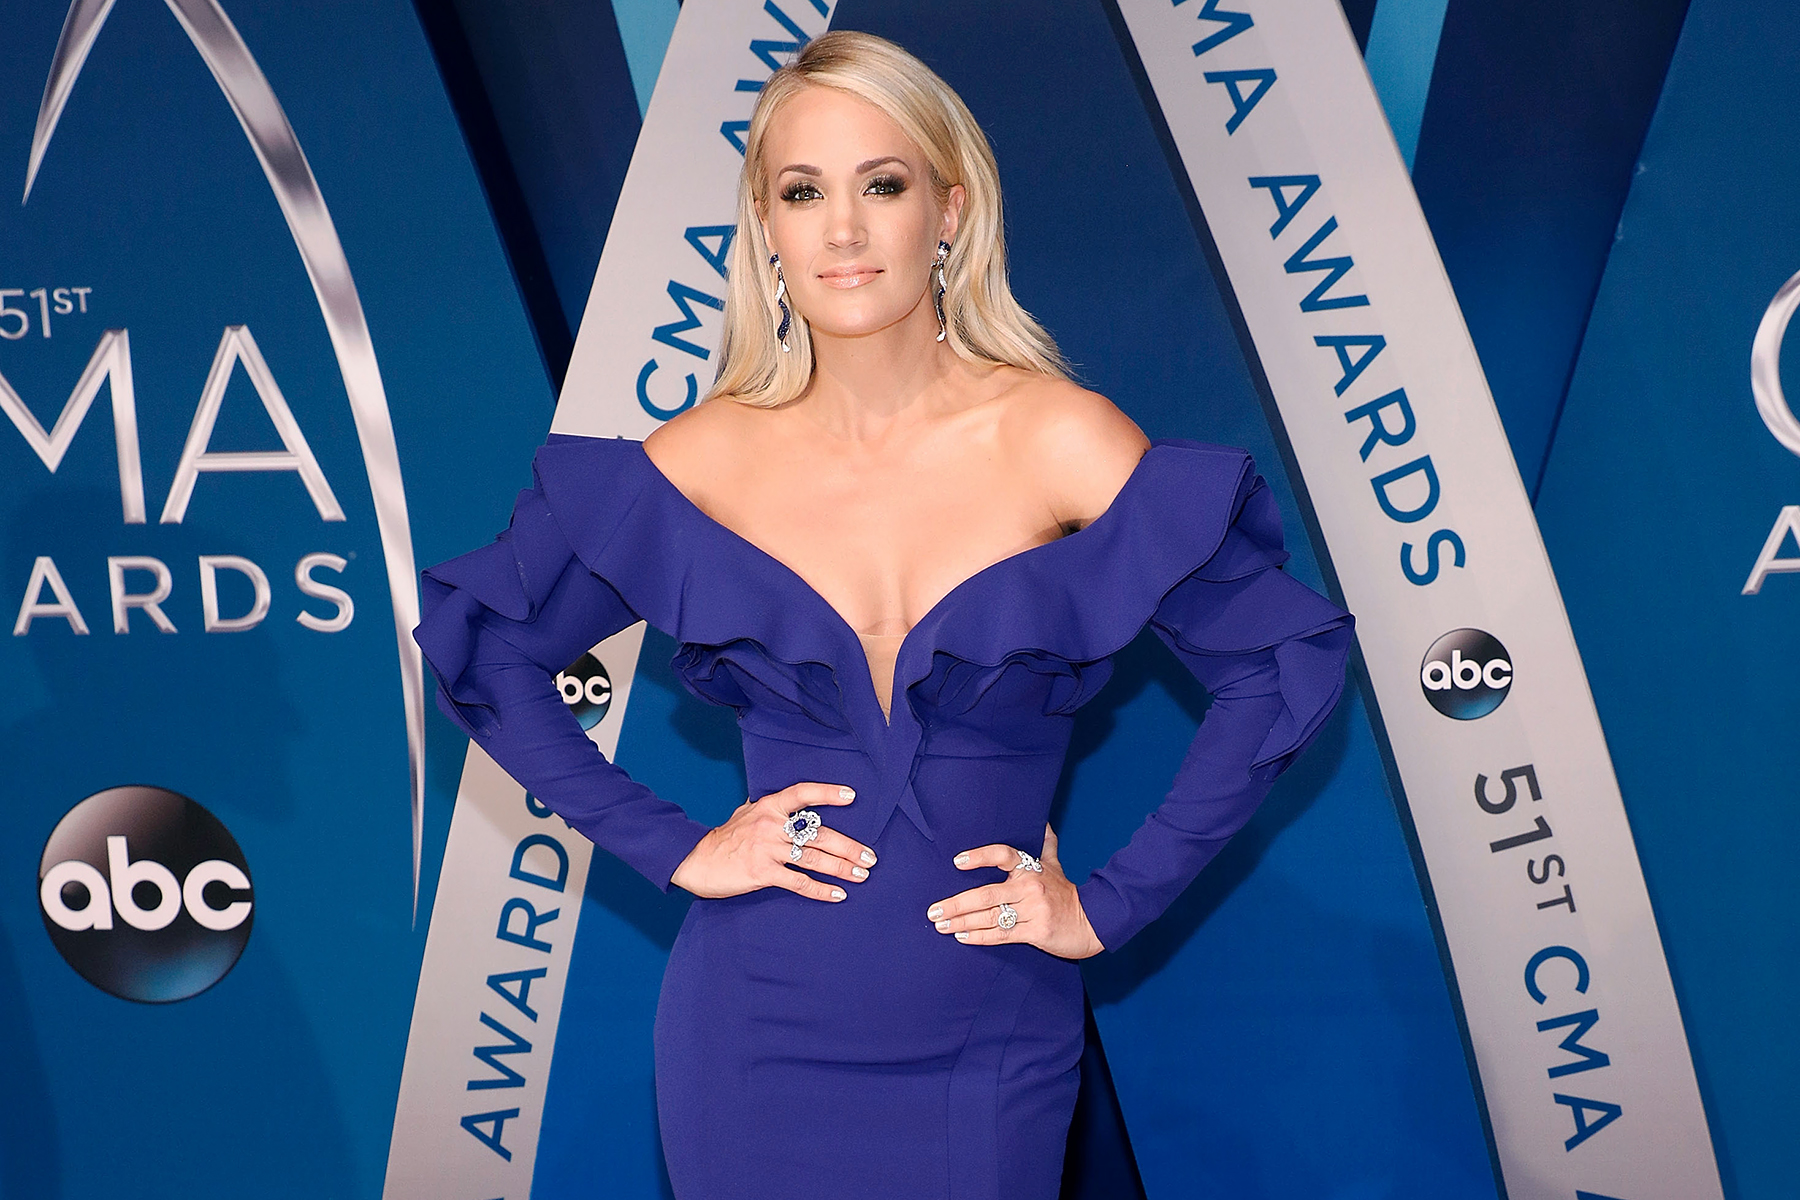 Carrie Underwood says she received facial stitches during November accident